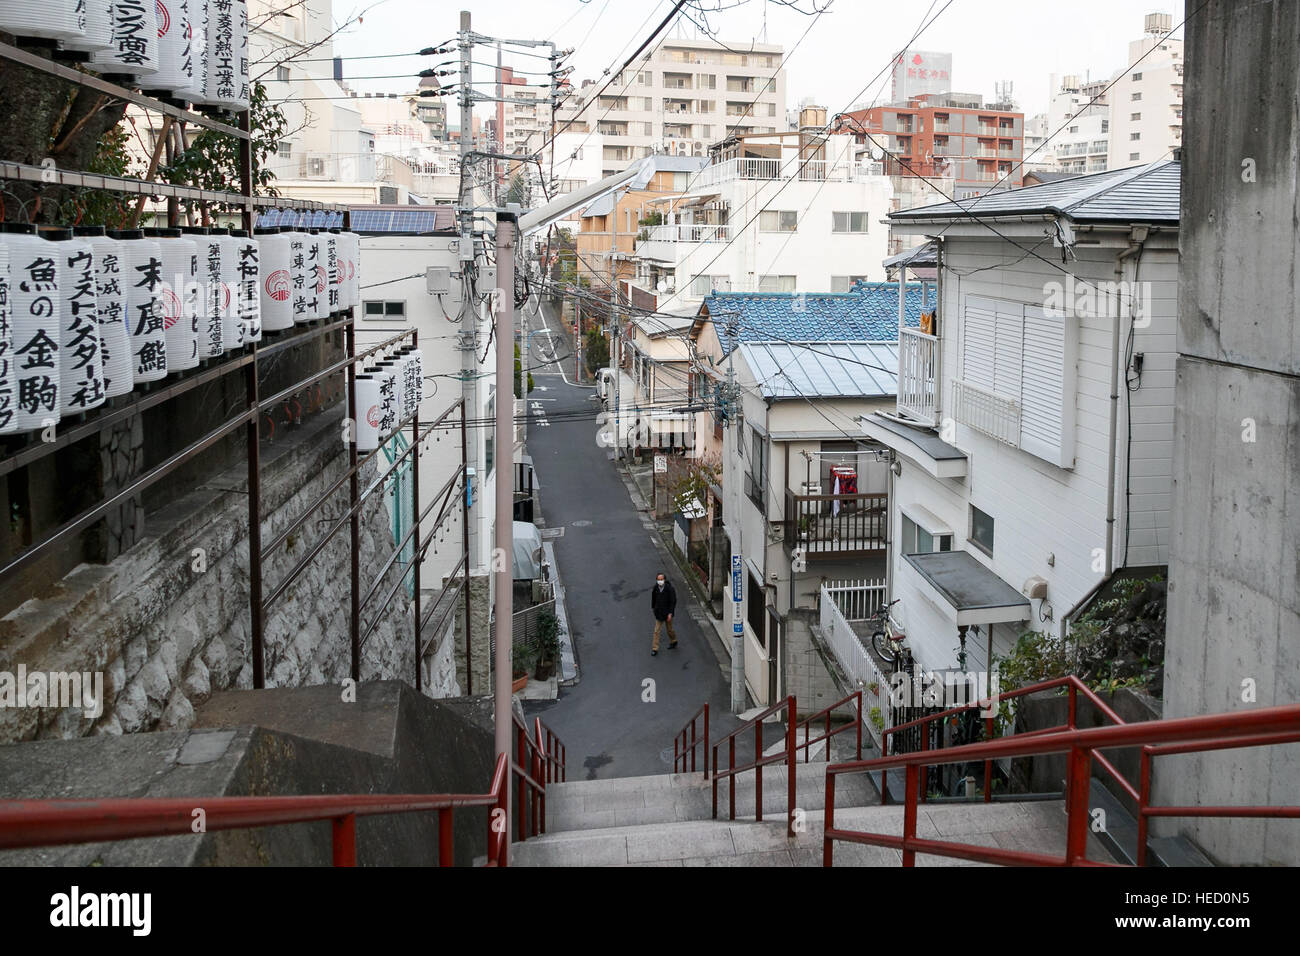 A View Of The Stairway Featured In The Movie Kimi No Na Wa Your Stock Photo Alamy